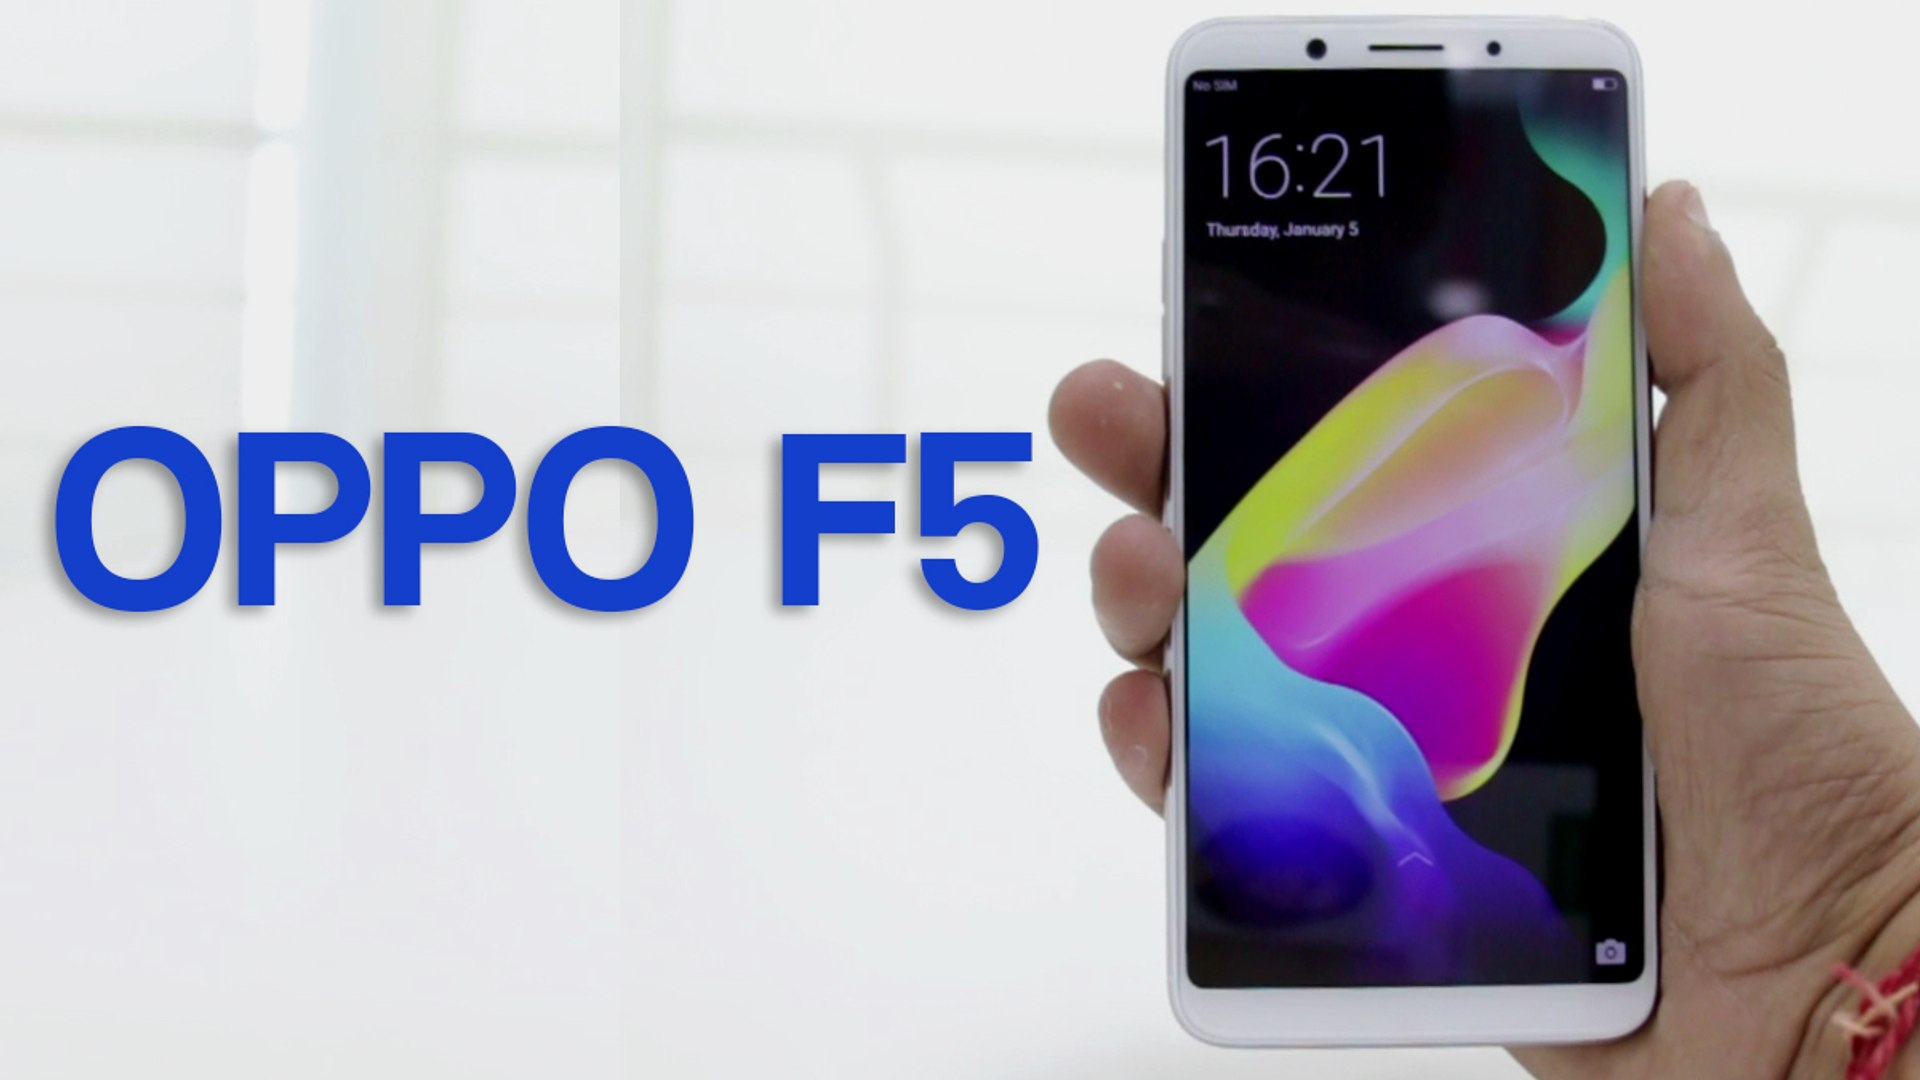 Oppo F5 with AI selfie camera is priced at Rs 19,990 [First Impressions]